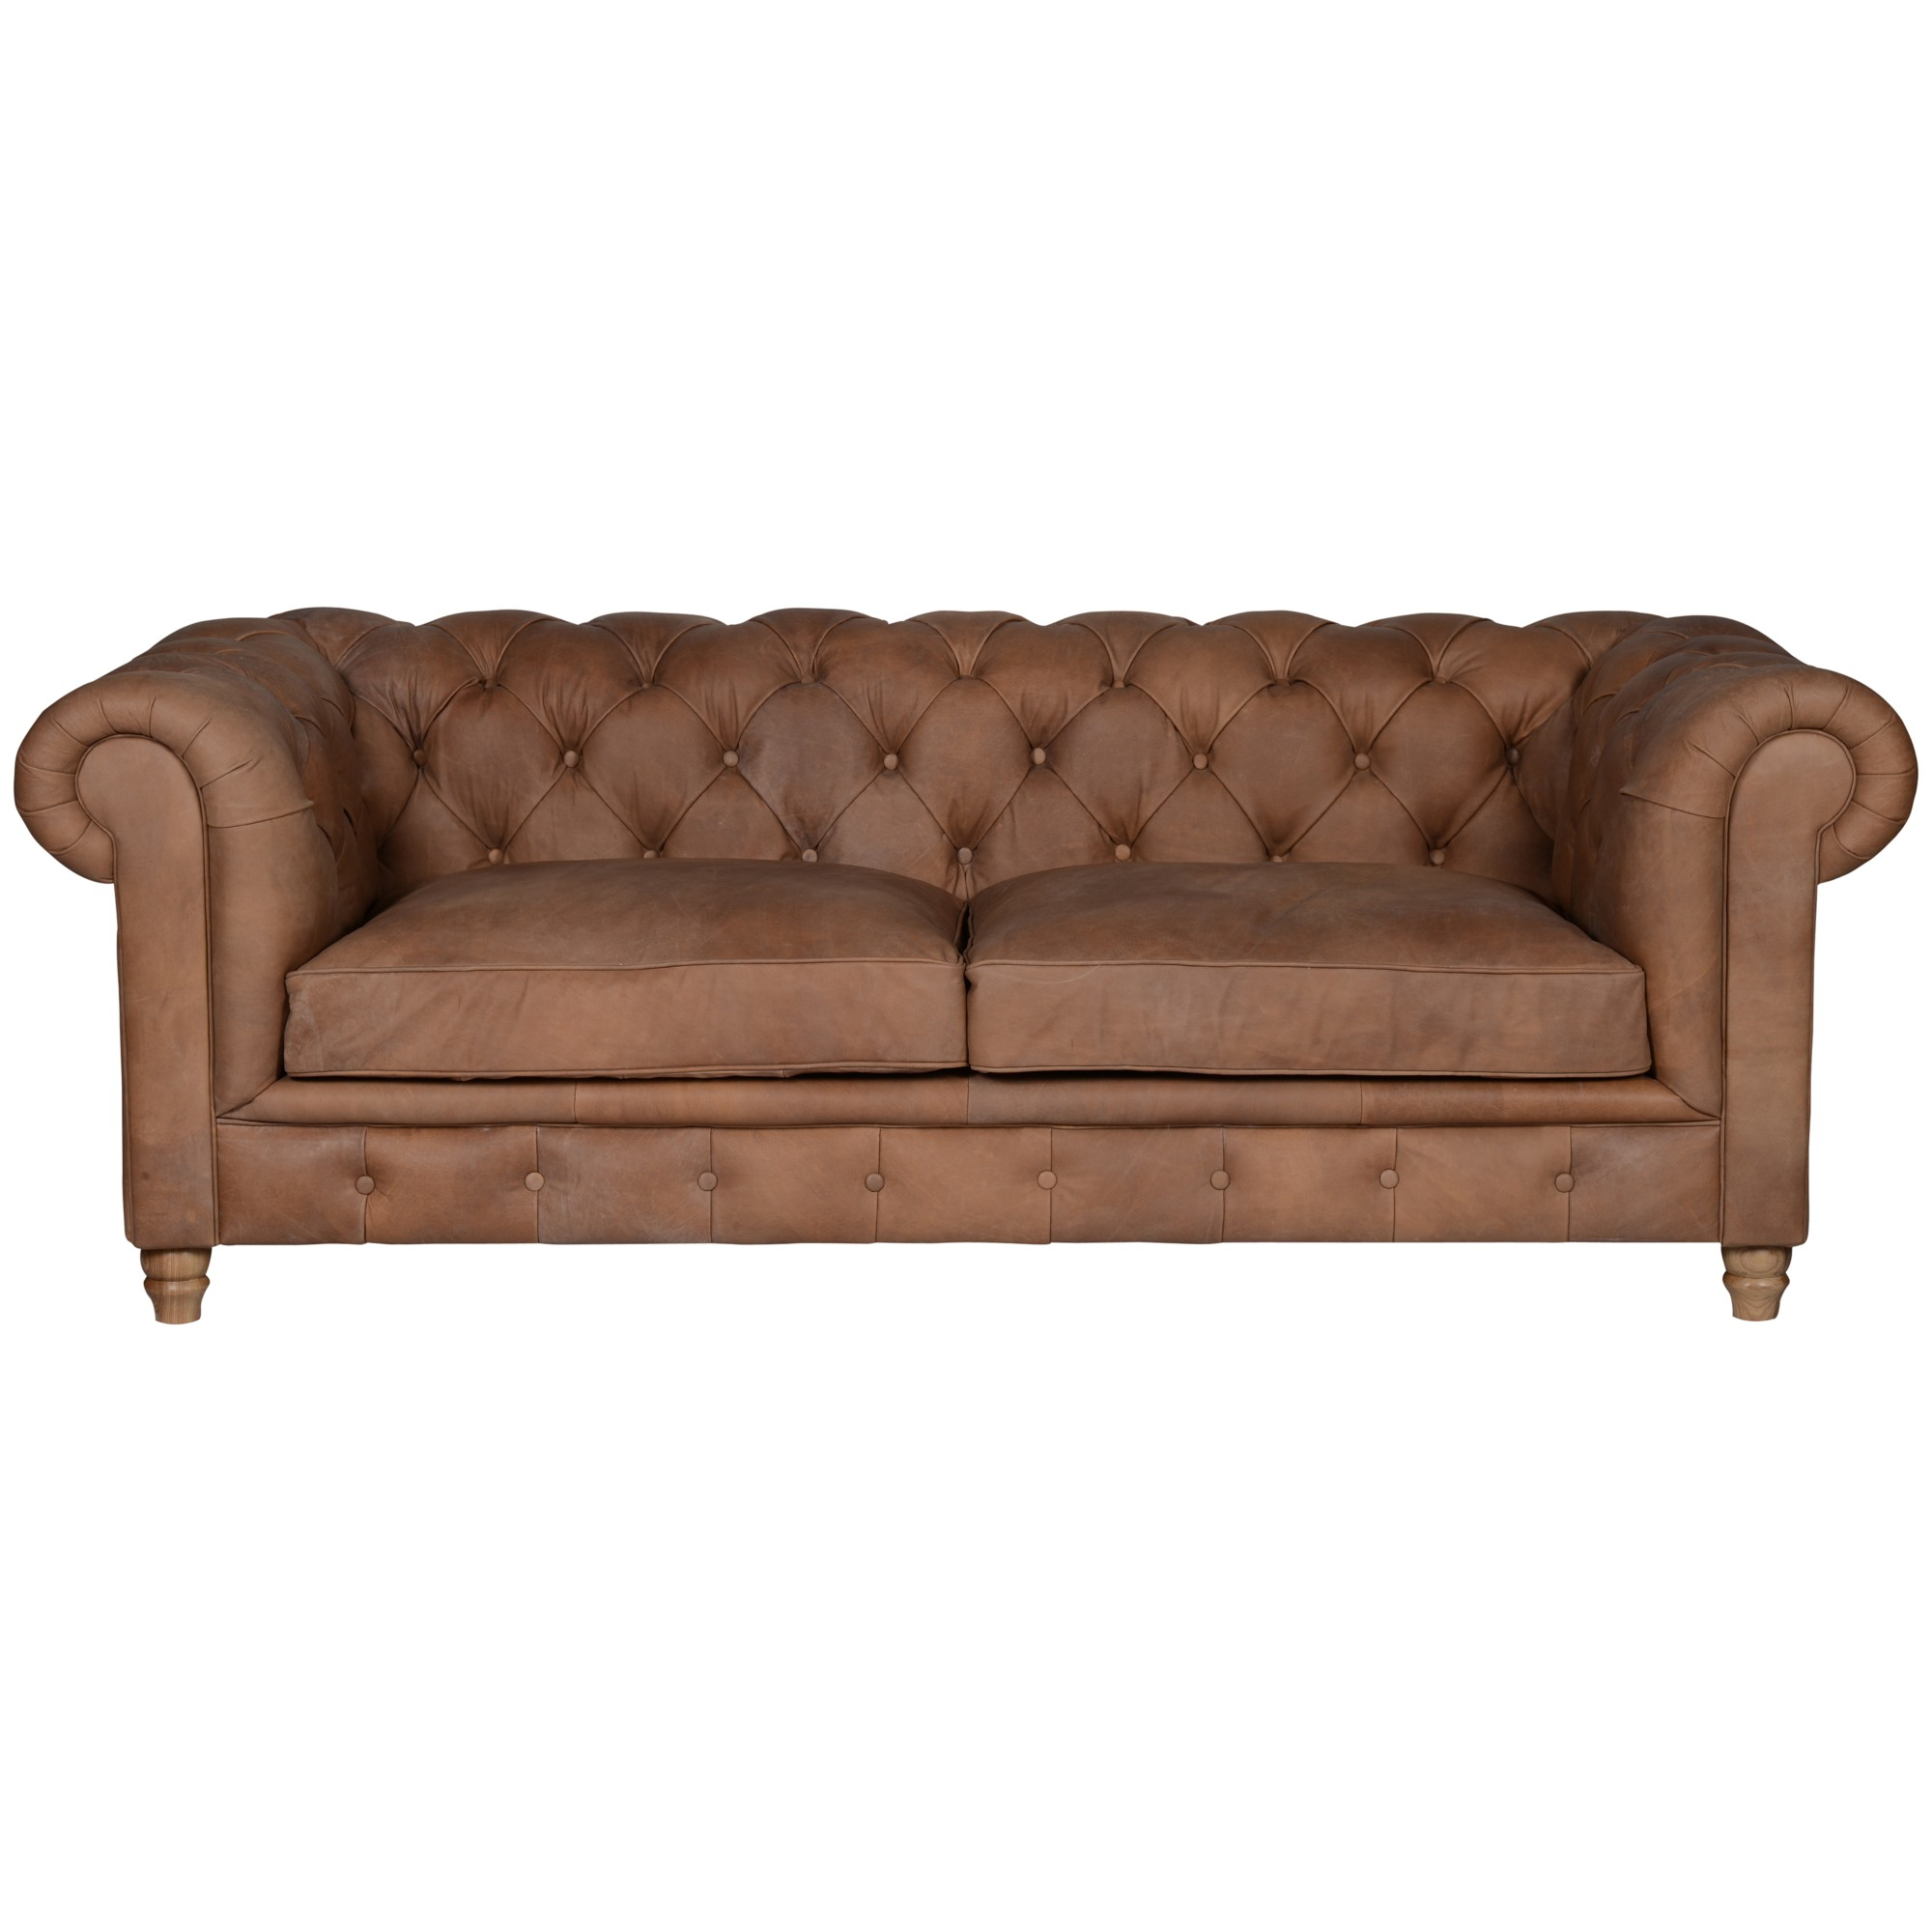 Halo Earle Large Chesterfield Leather Sofa